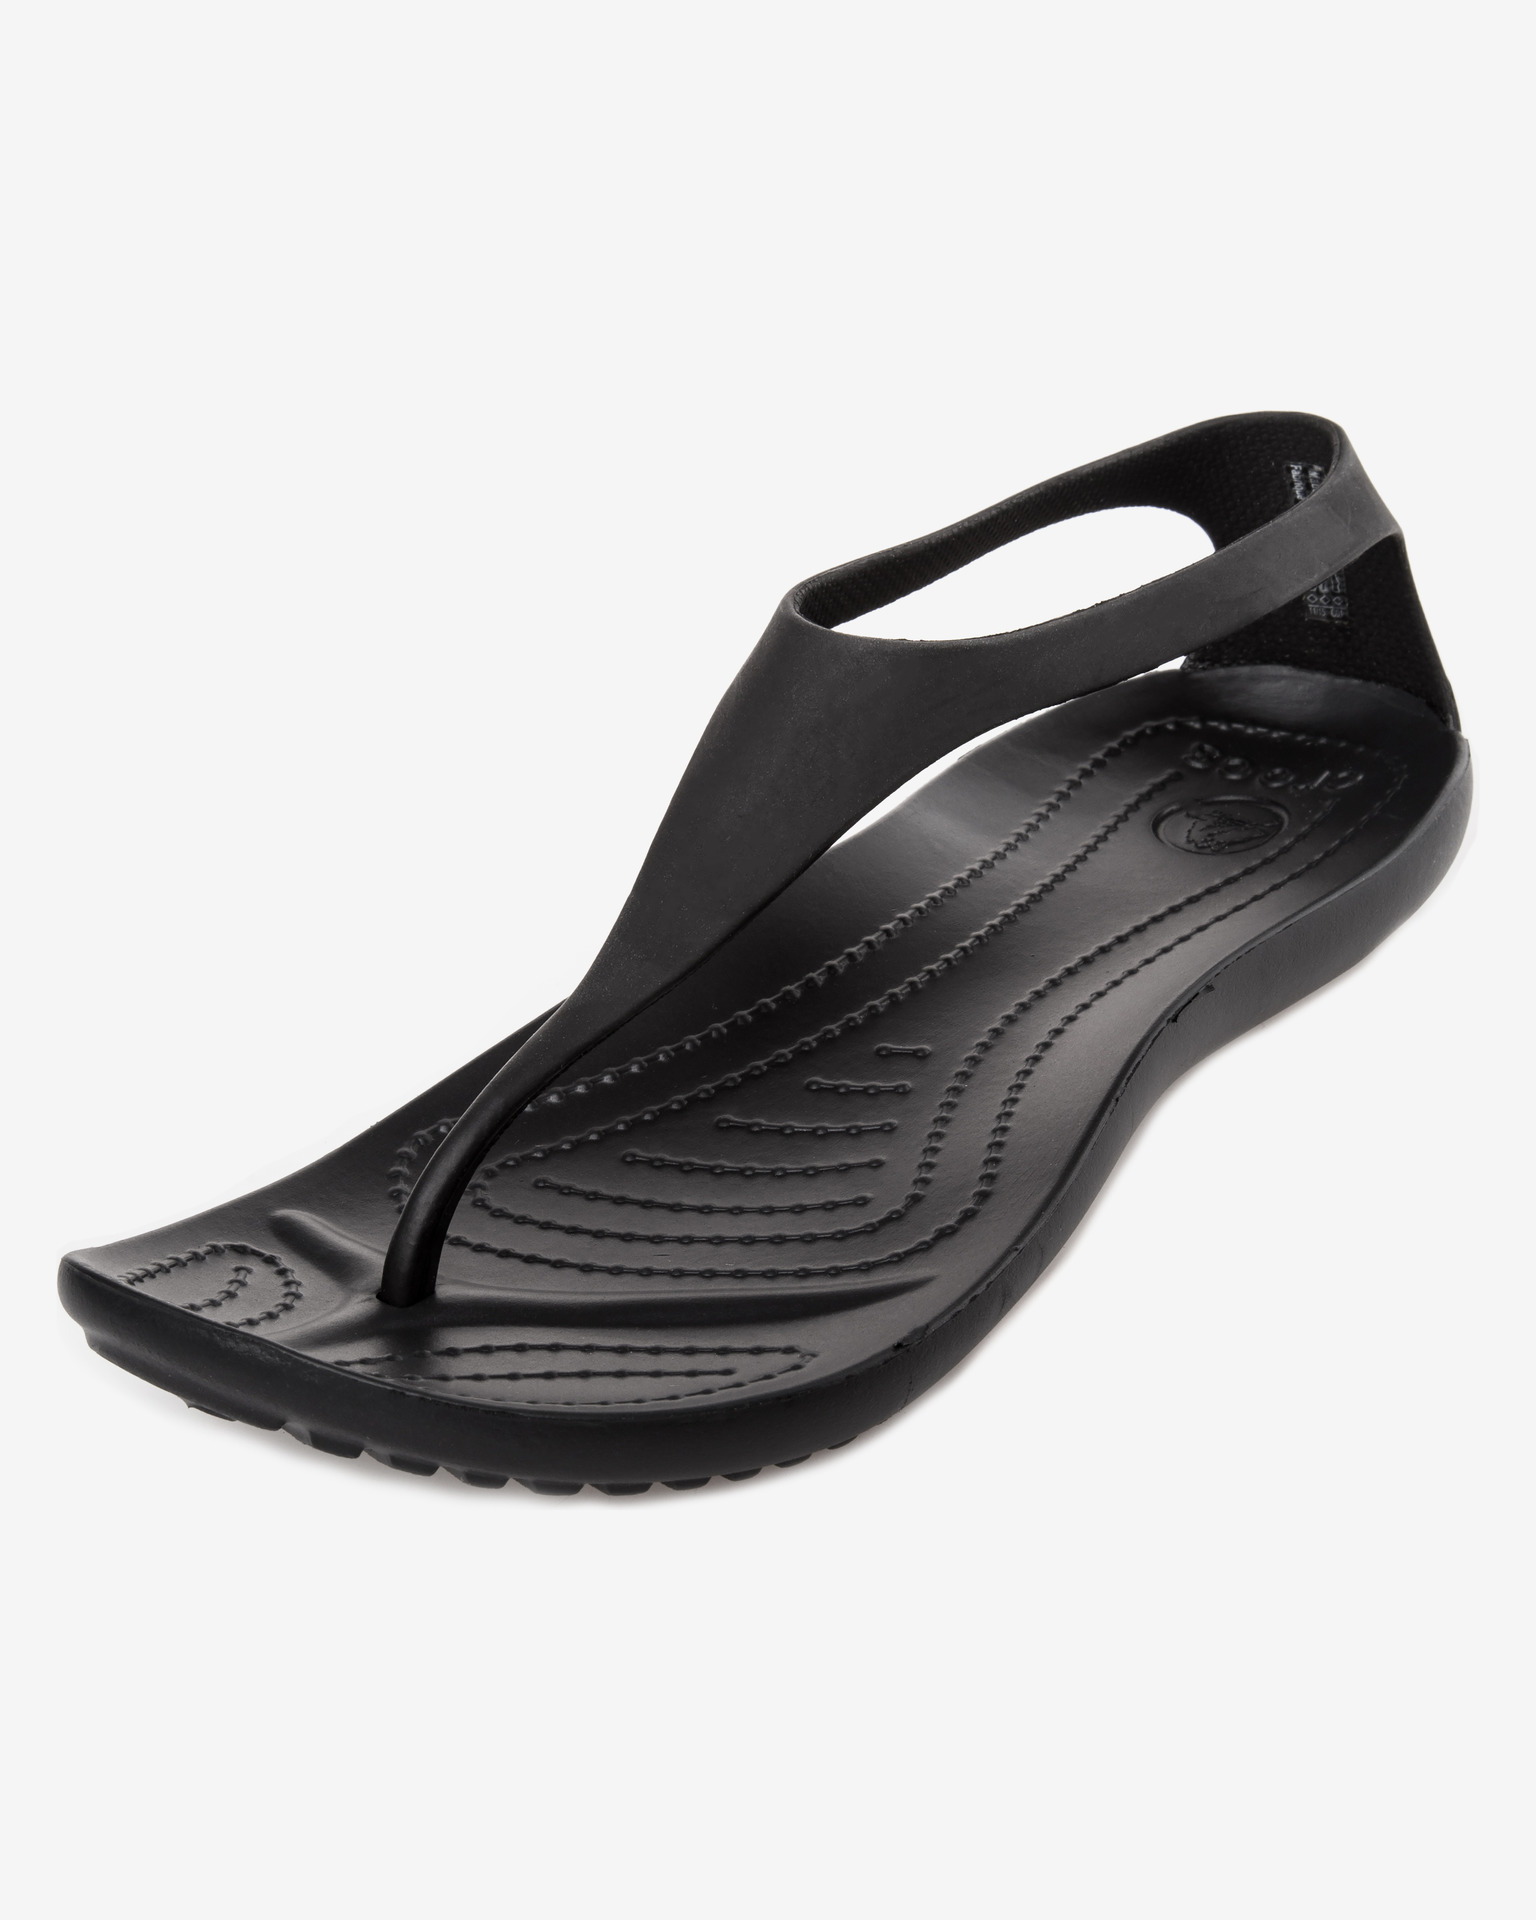 Crocs sexi flip black